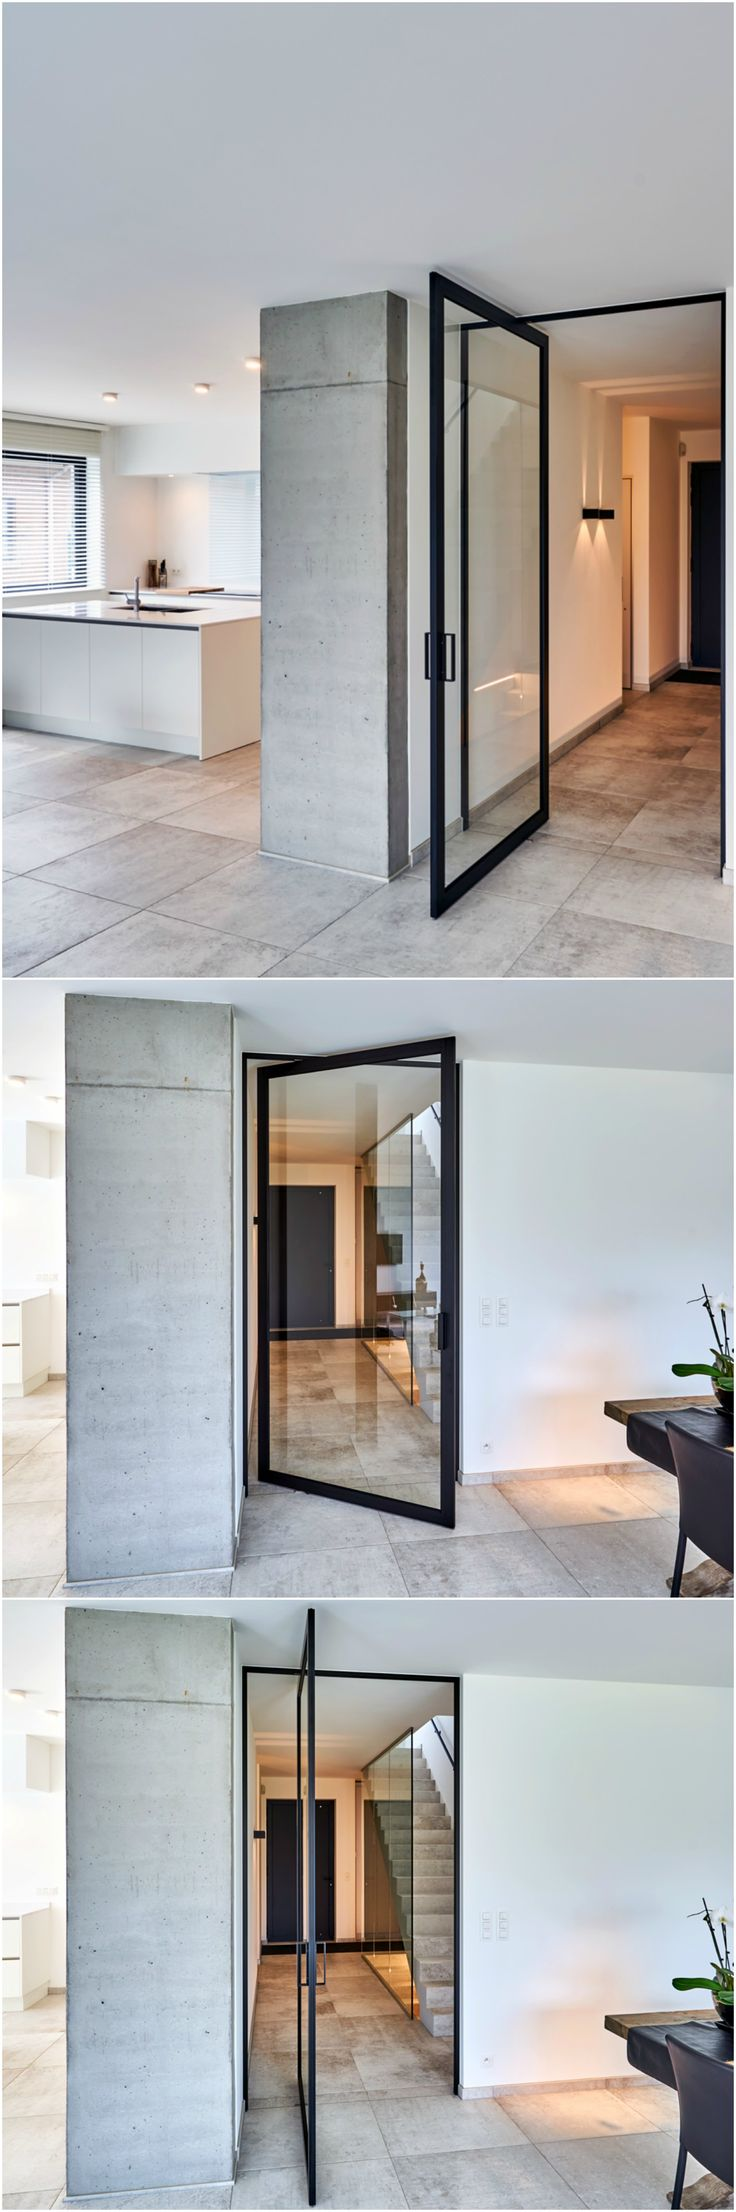 25 best ideas about portes pivotantes on pinterest for Porte acier vitree type atelier